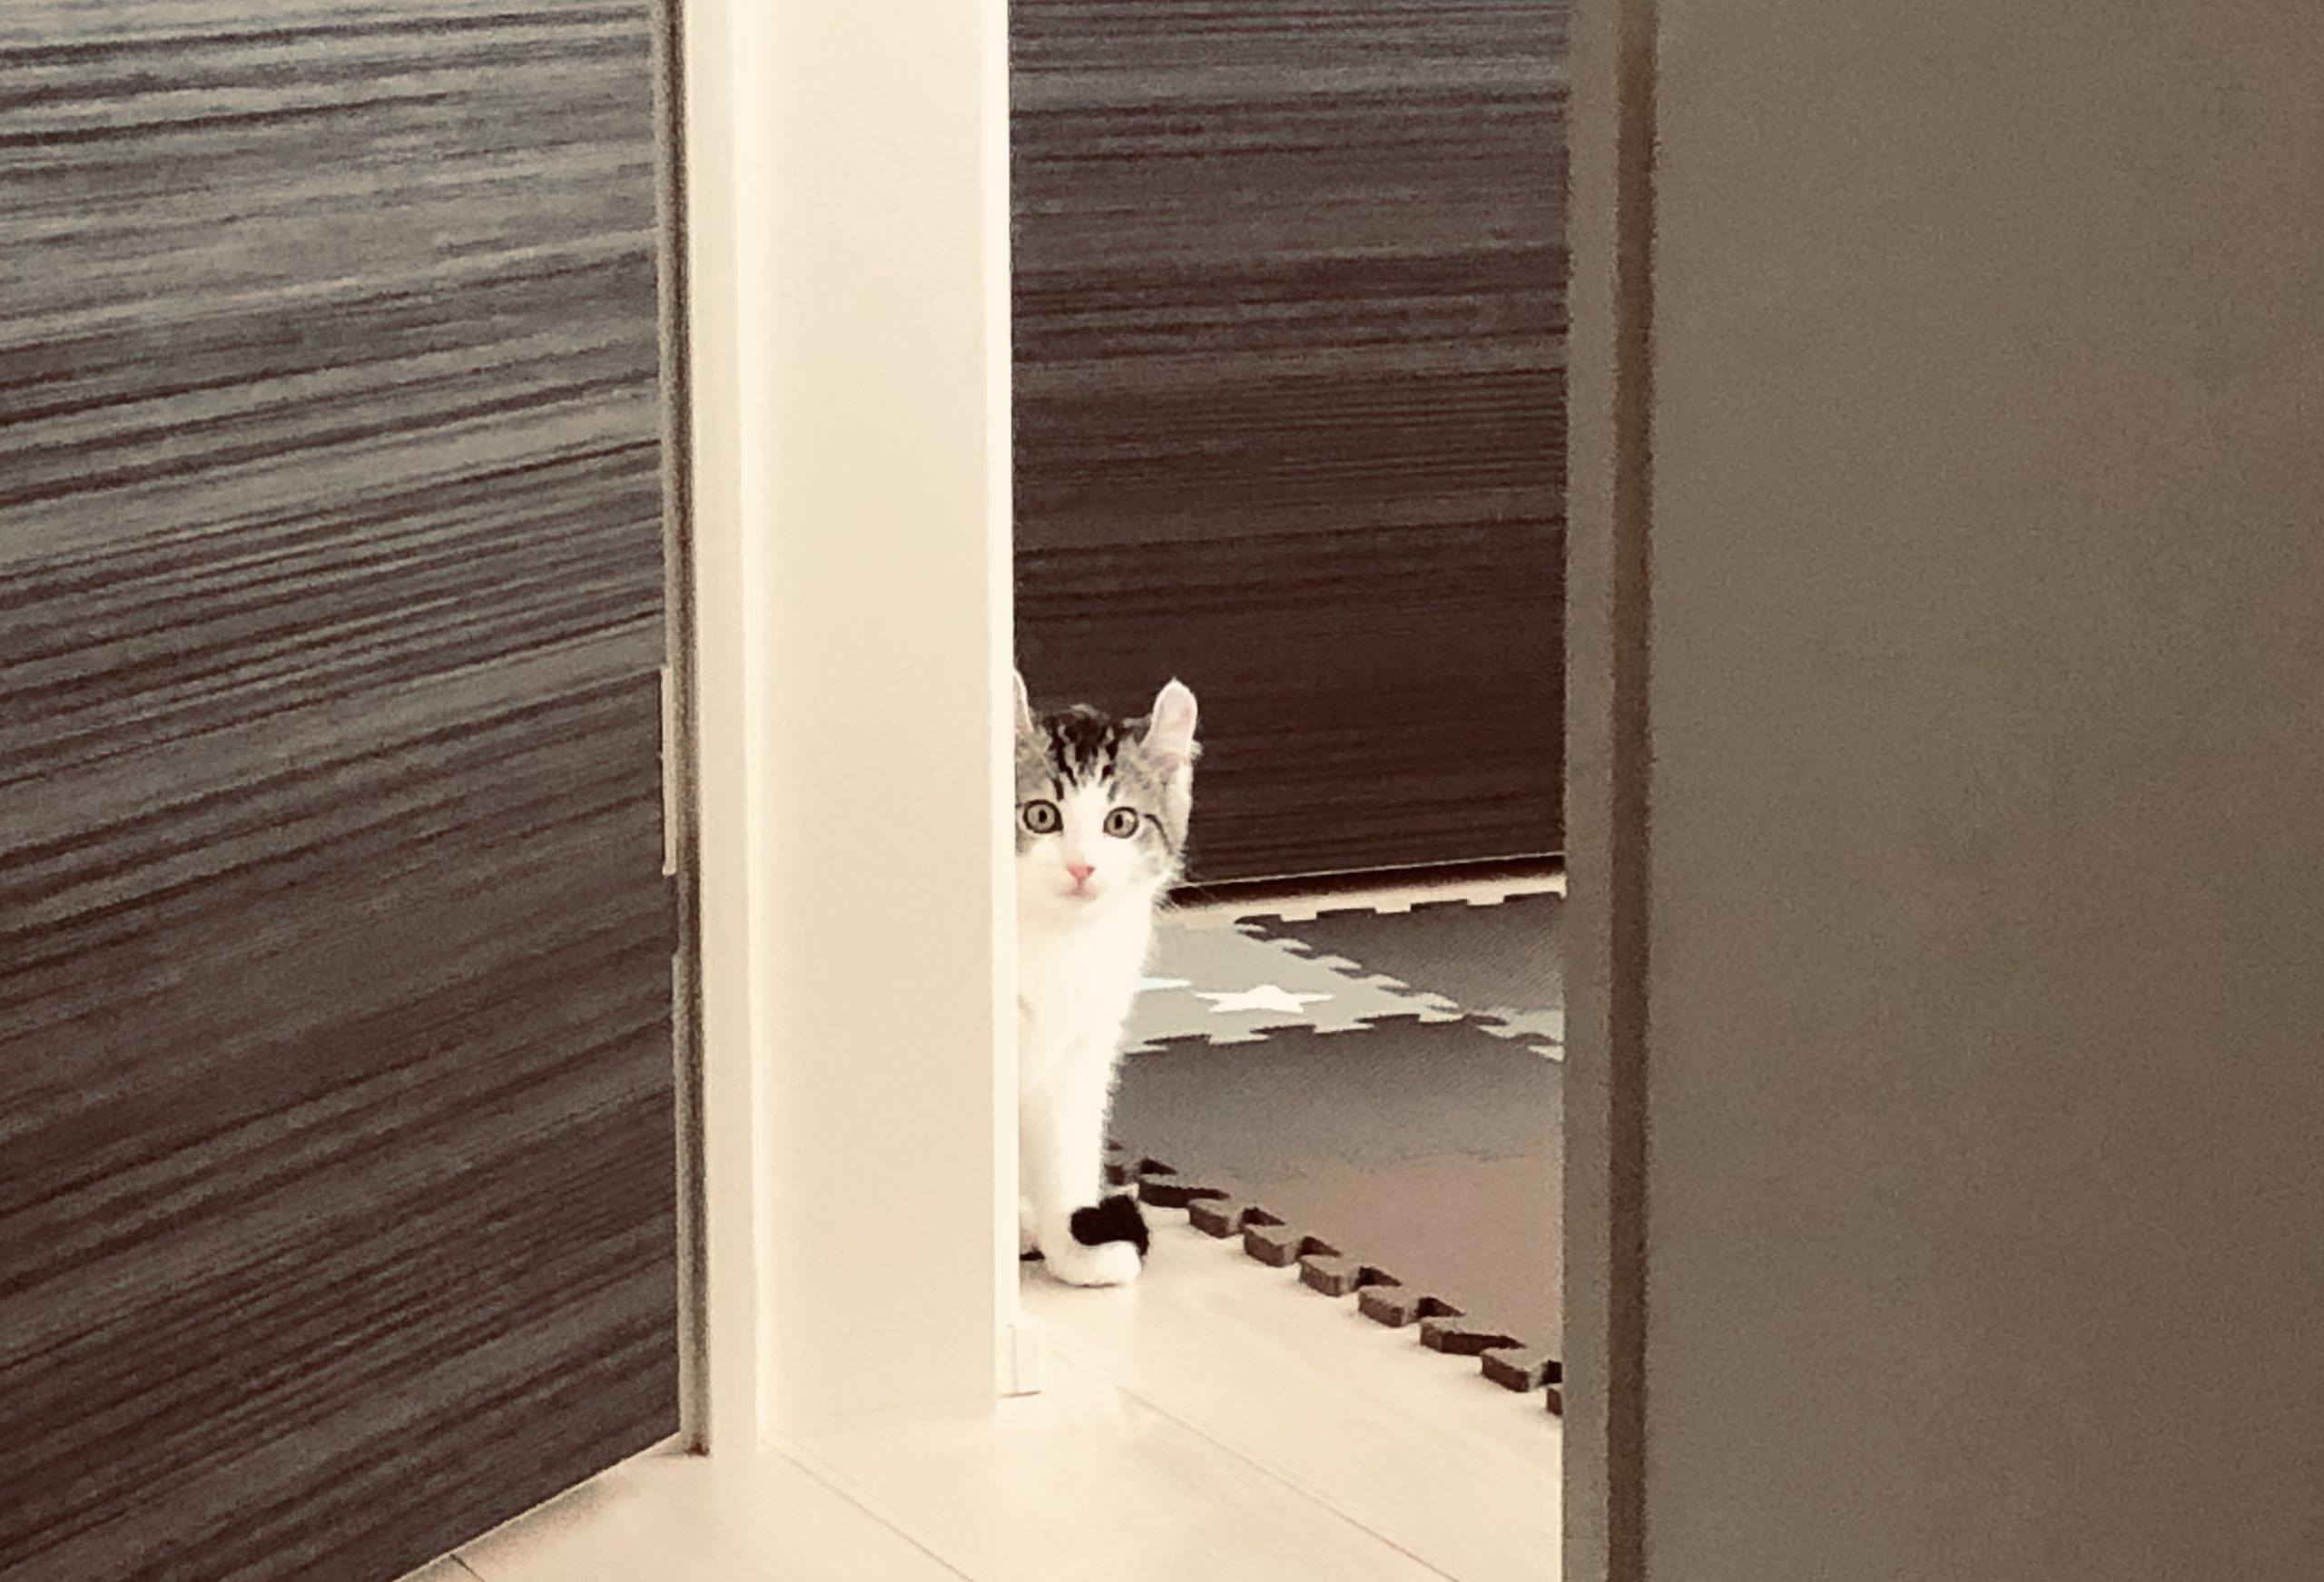 Why do kittens stare at their owners from the shadows?